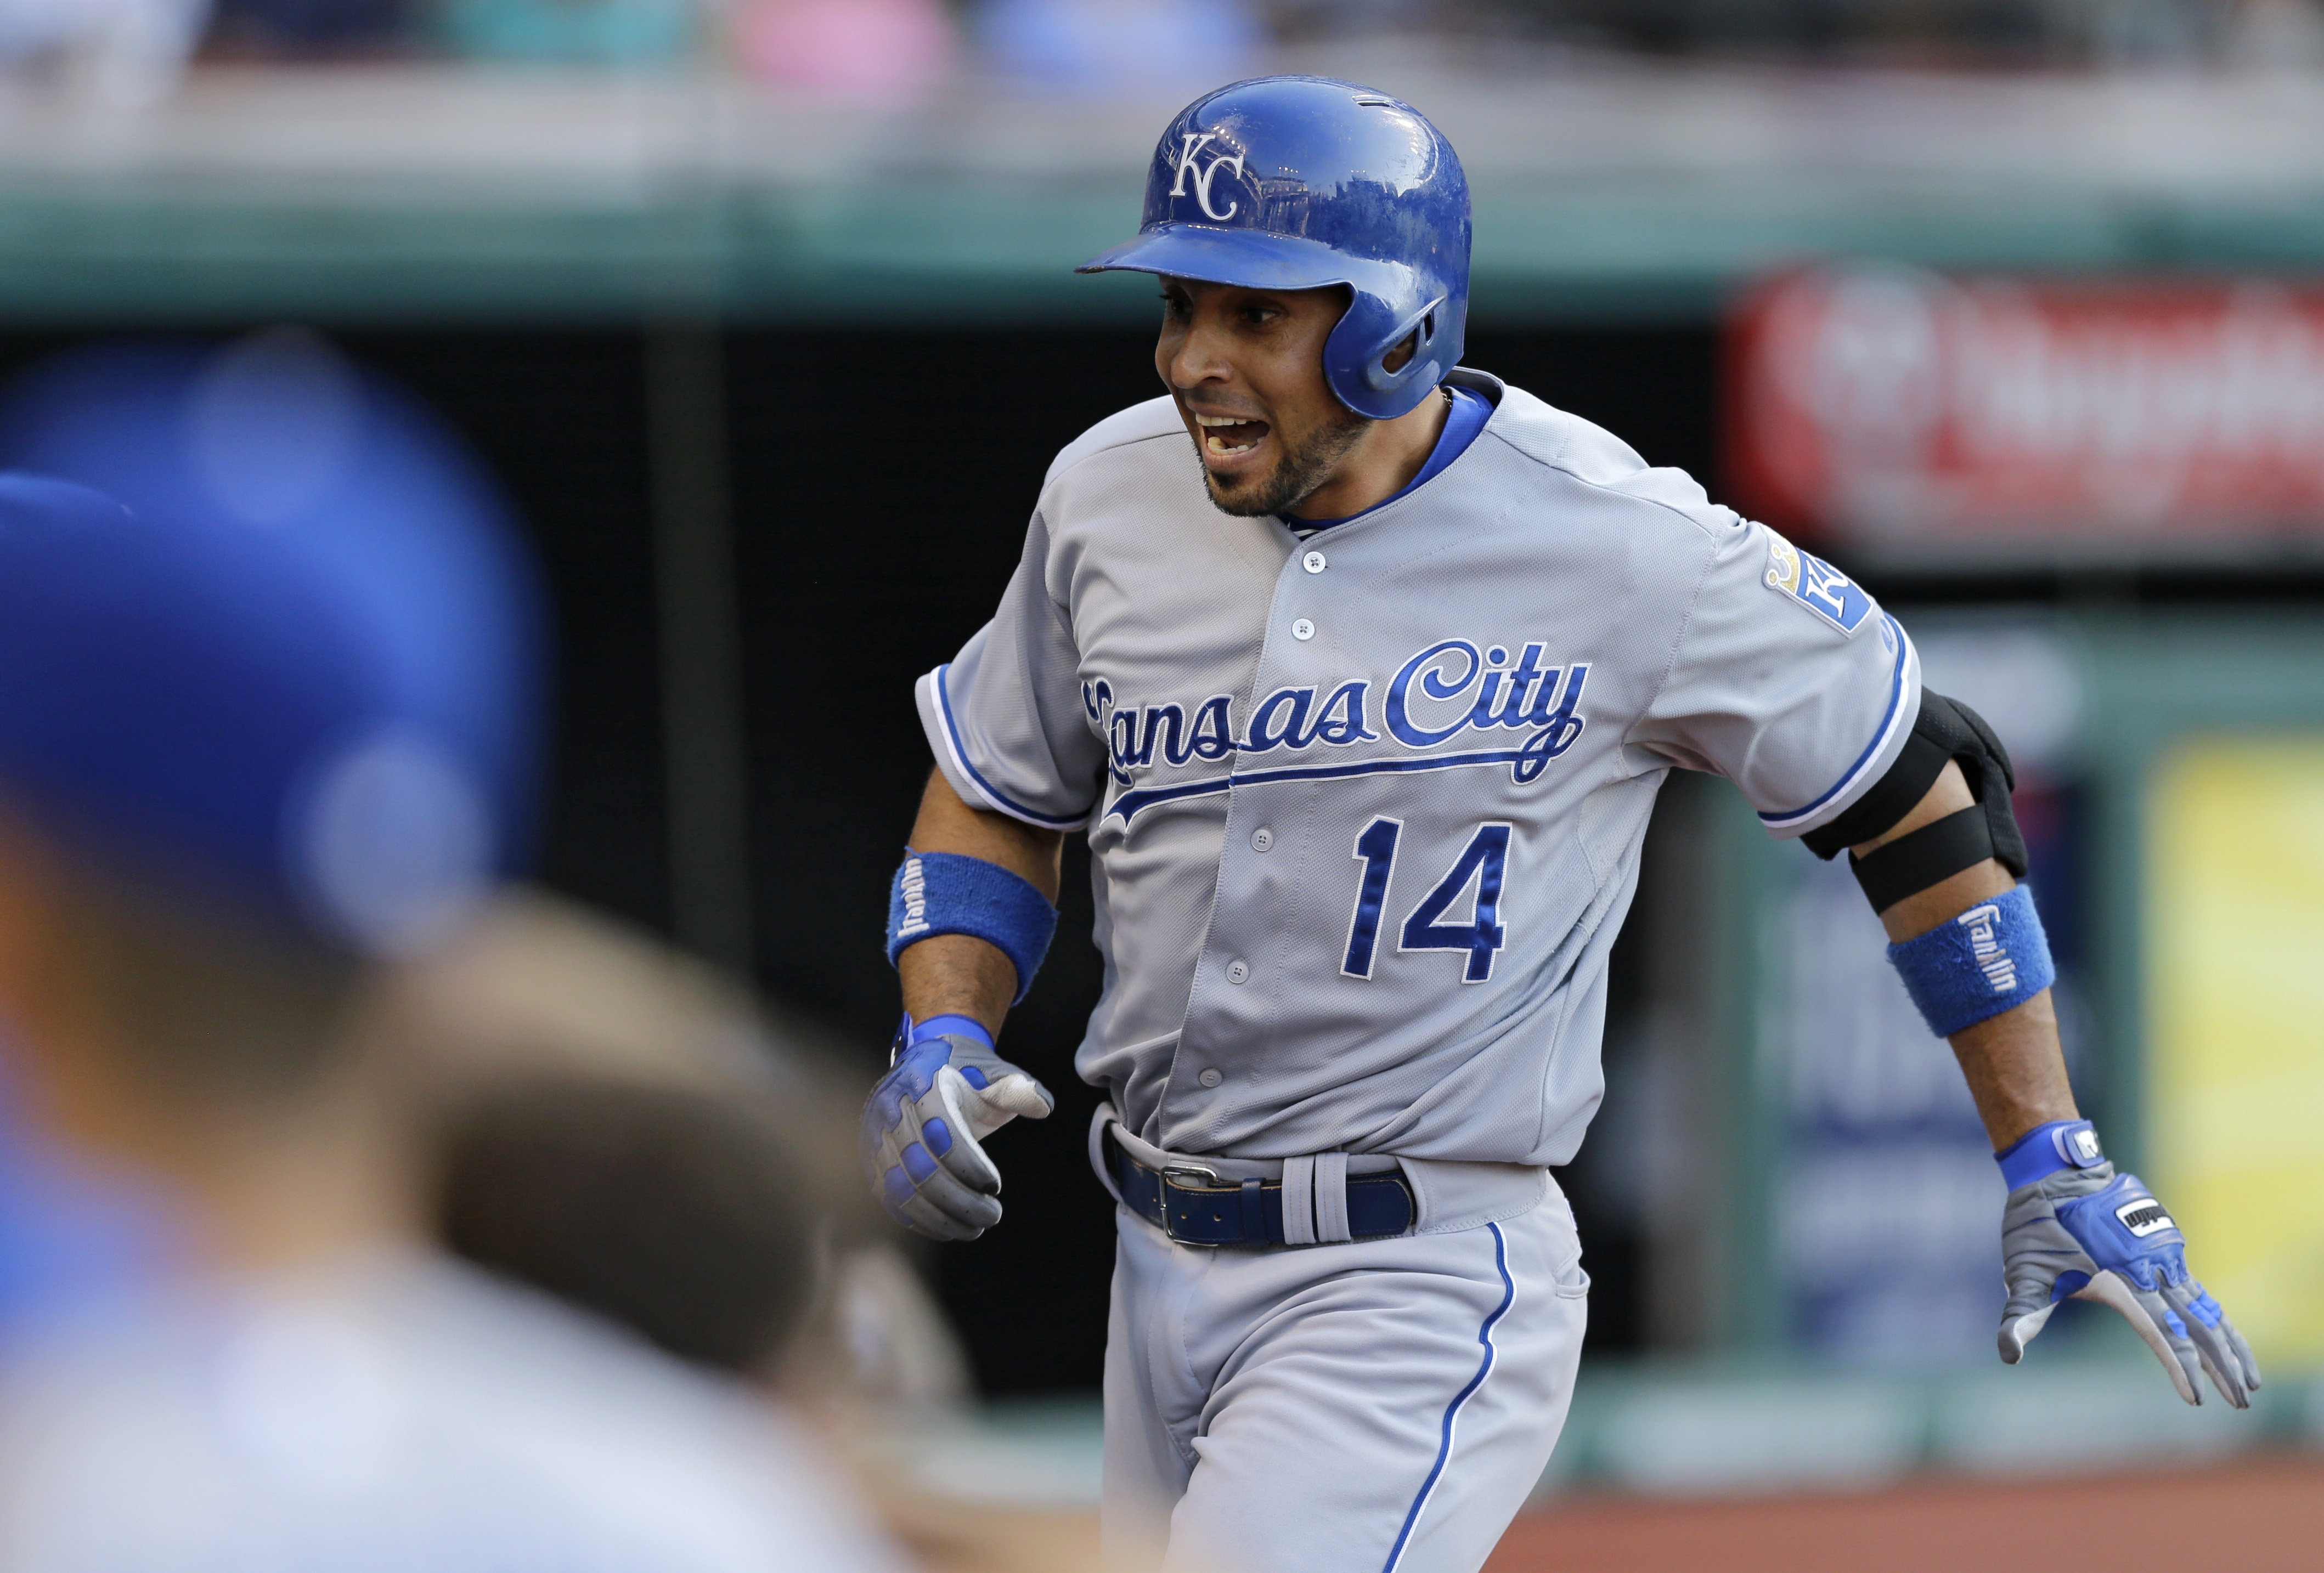 Kansas City Royals' Omar Infante gets ready to jump into the dugout after hitting a solo home run off Cleveland Indians starting pitcher Cody Anderson in the second inning of a baseball game, Monday, July 27, 2015, in Cleveland. (AP Photo/Tony Dejak)